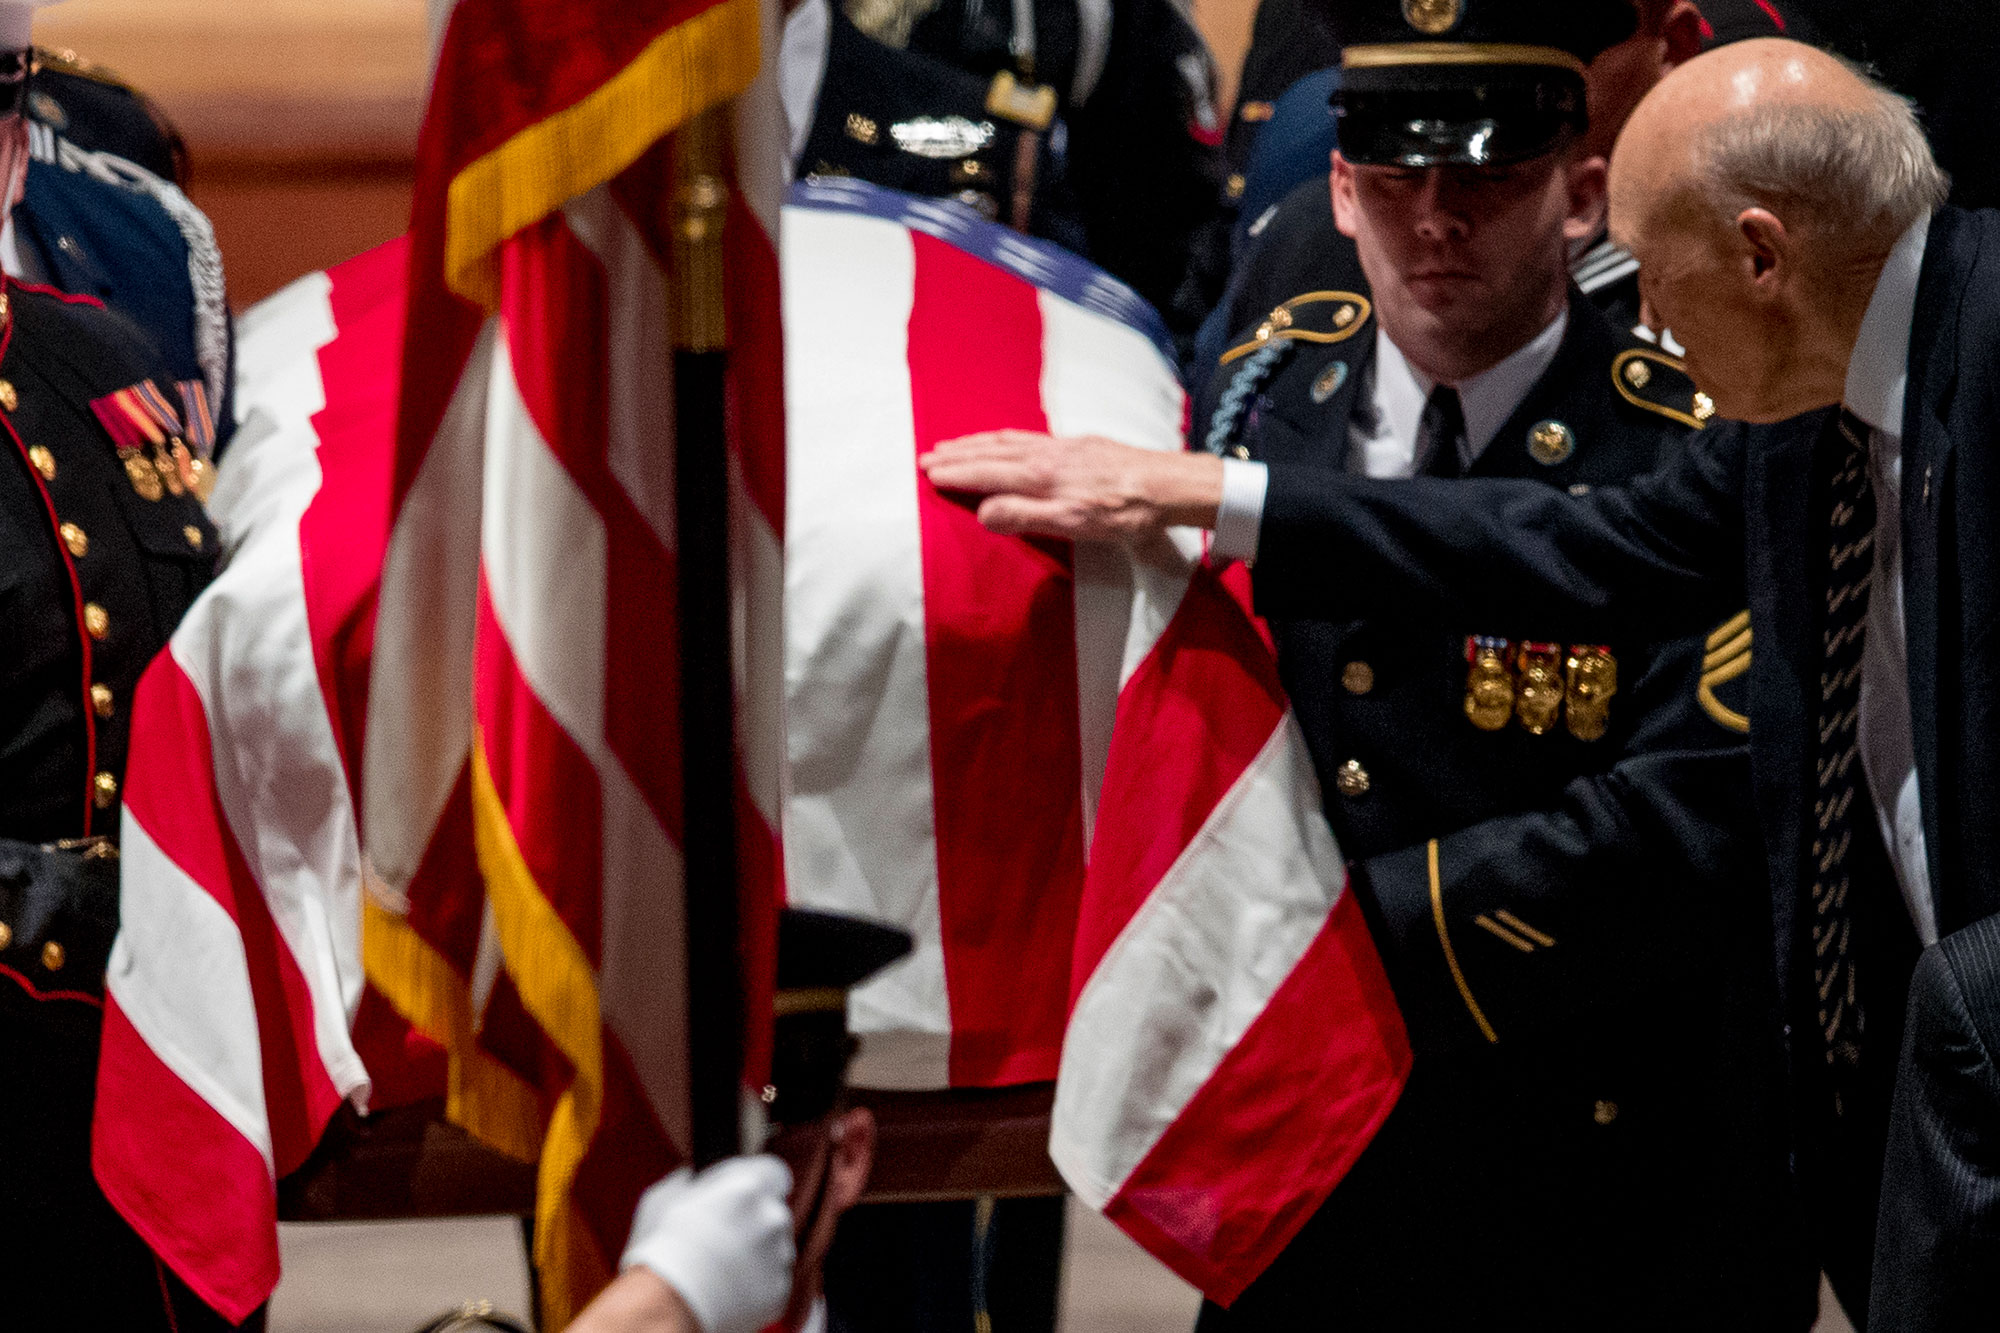 "<div class=""meta image-caption""><div class=""origin-logo origin-image none""><span>none</span></div><span class=""caption-text"">Former Sen. Alan Simpson, R-Wyo, touches the flag-draped casket of former President George H.W. Bush. (Andrew Harnik, Pool/AP Photo)</span></div>"